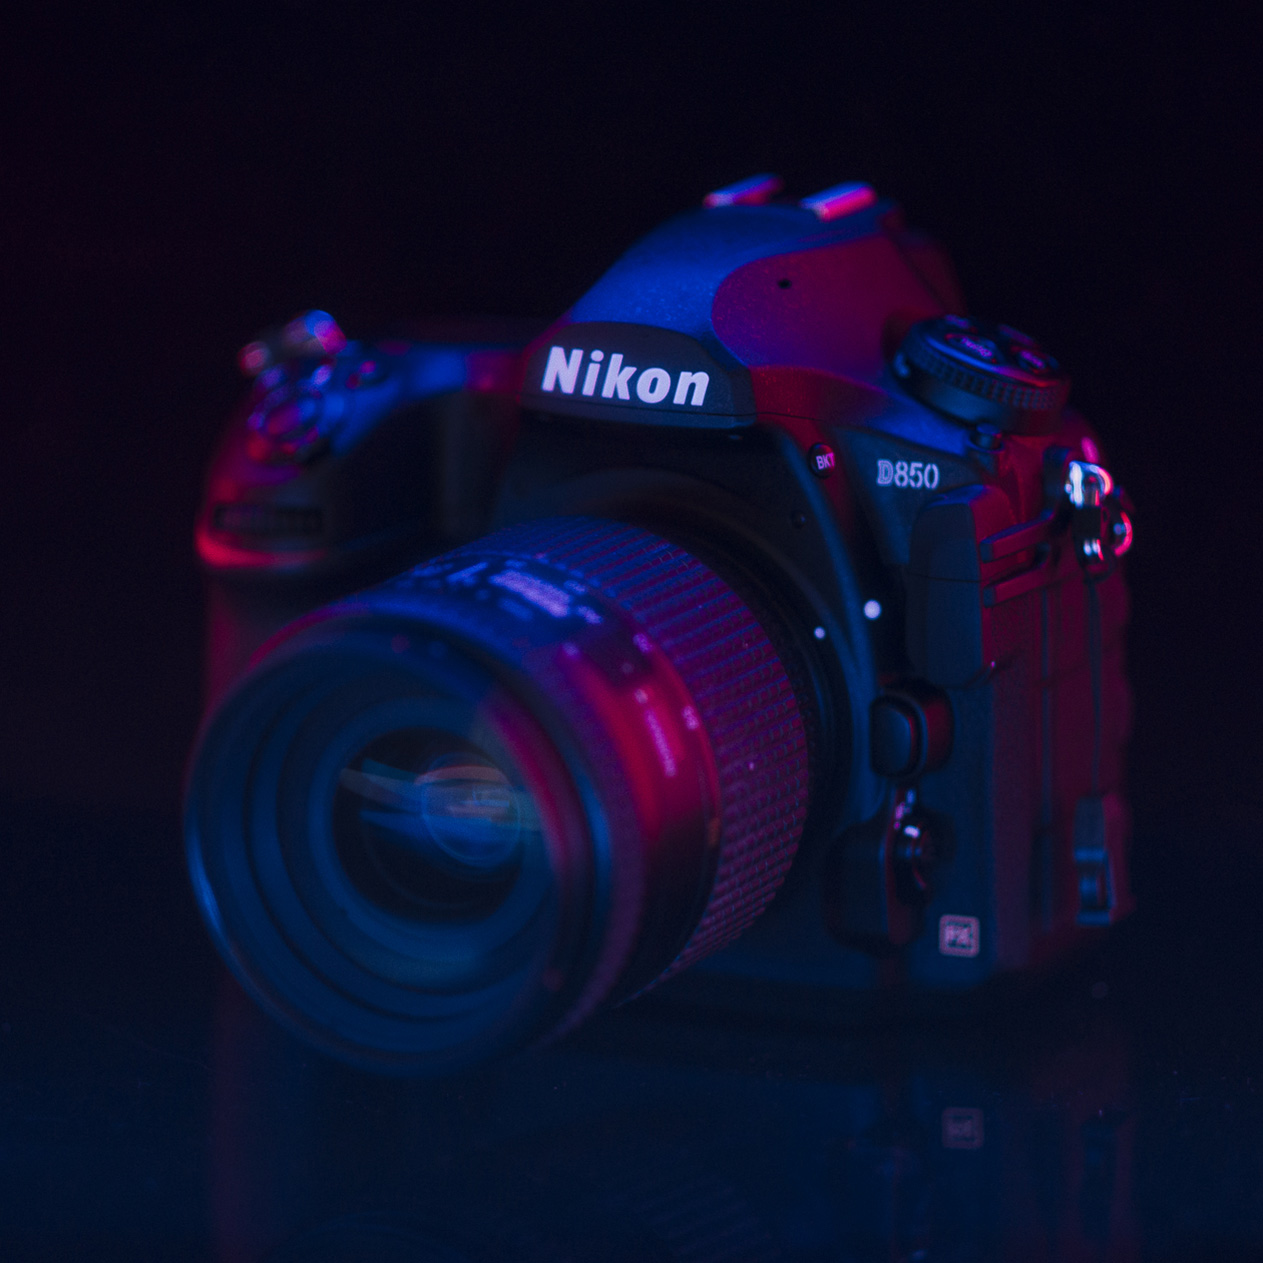 The Nikon D850 is one of the newest full frame additions to the Nikon lineup and was released late in 2017.